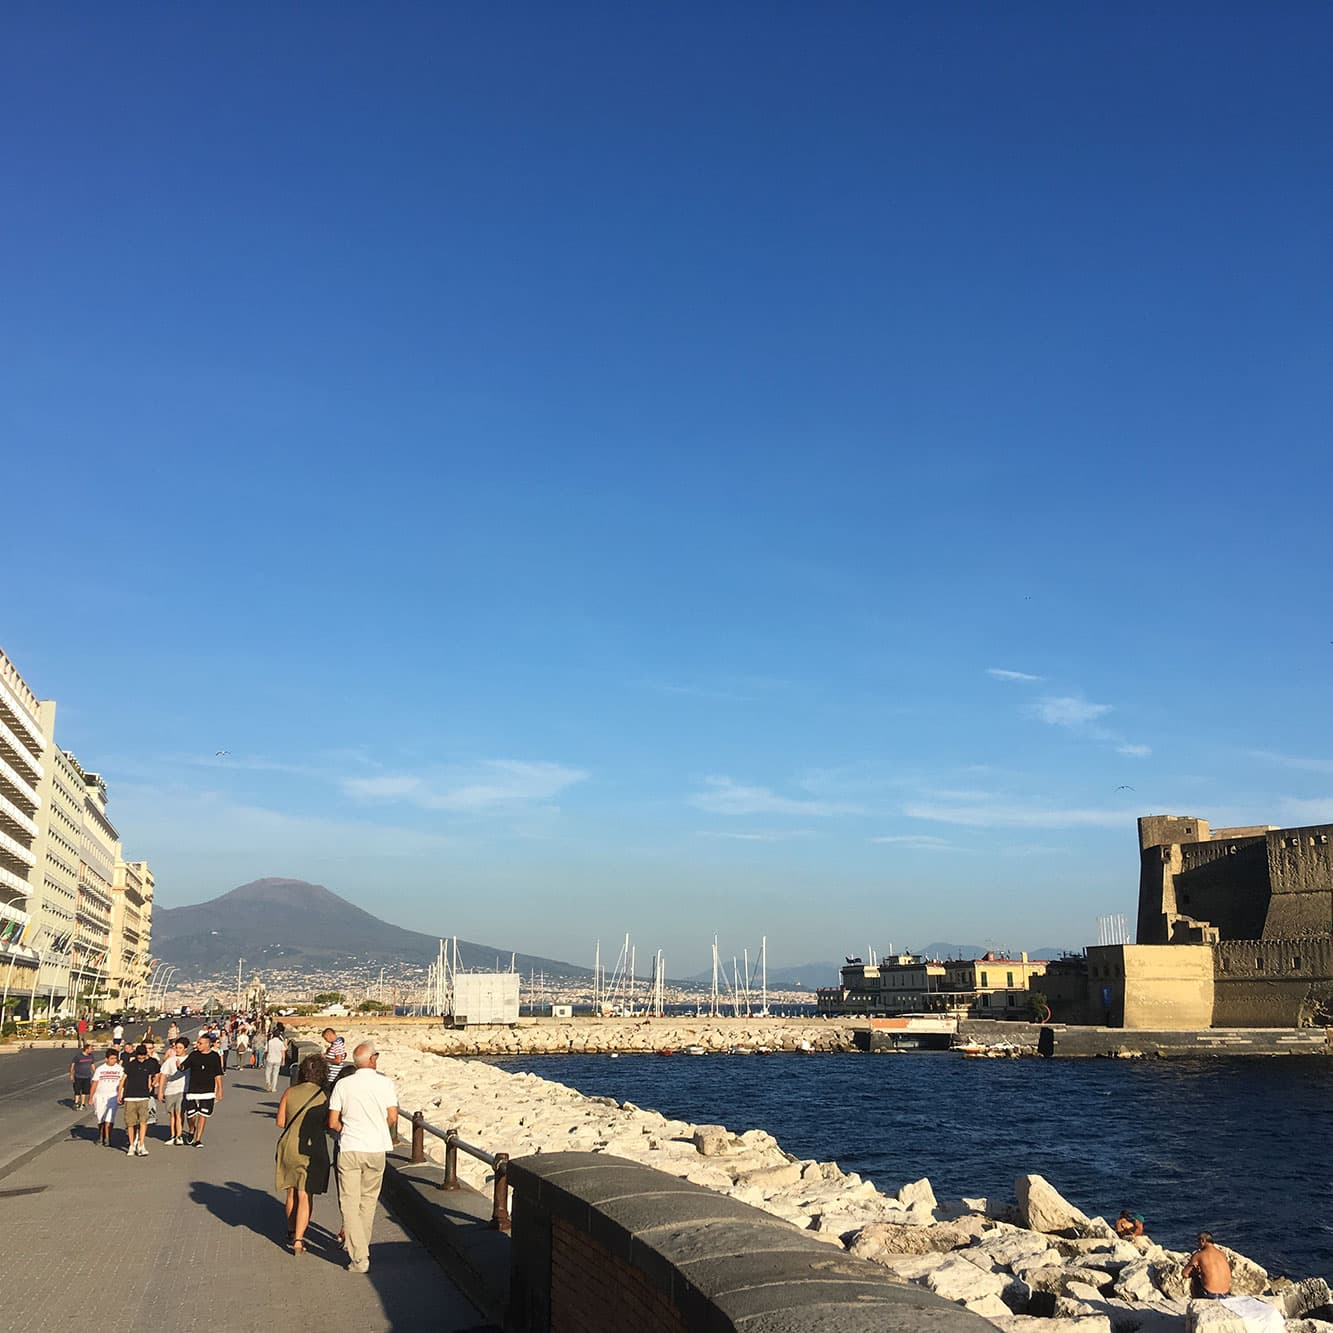 Naples's Lungomare seafront walk with bridge to fort